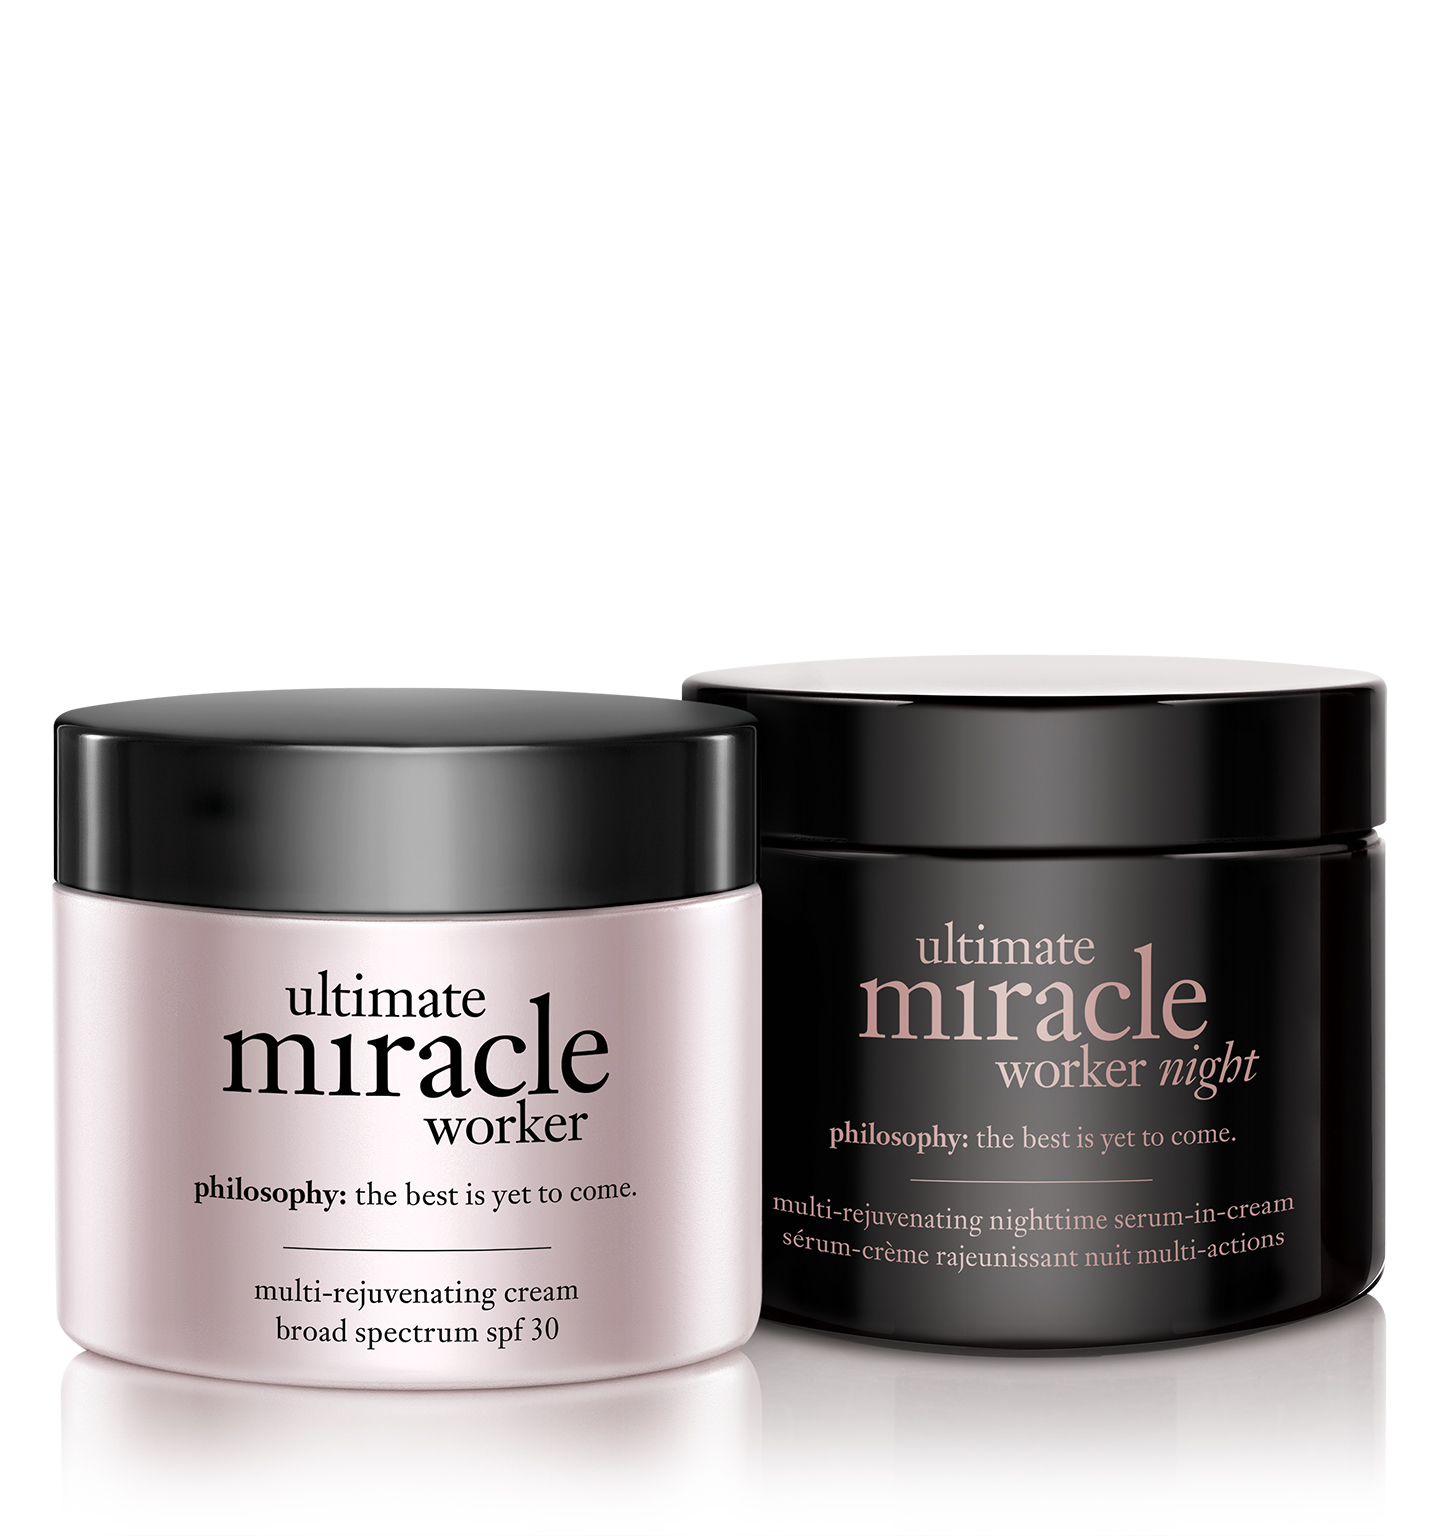 philosophy, ultimate miracle worker day night duo